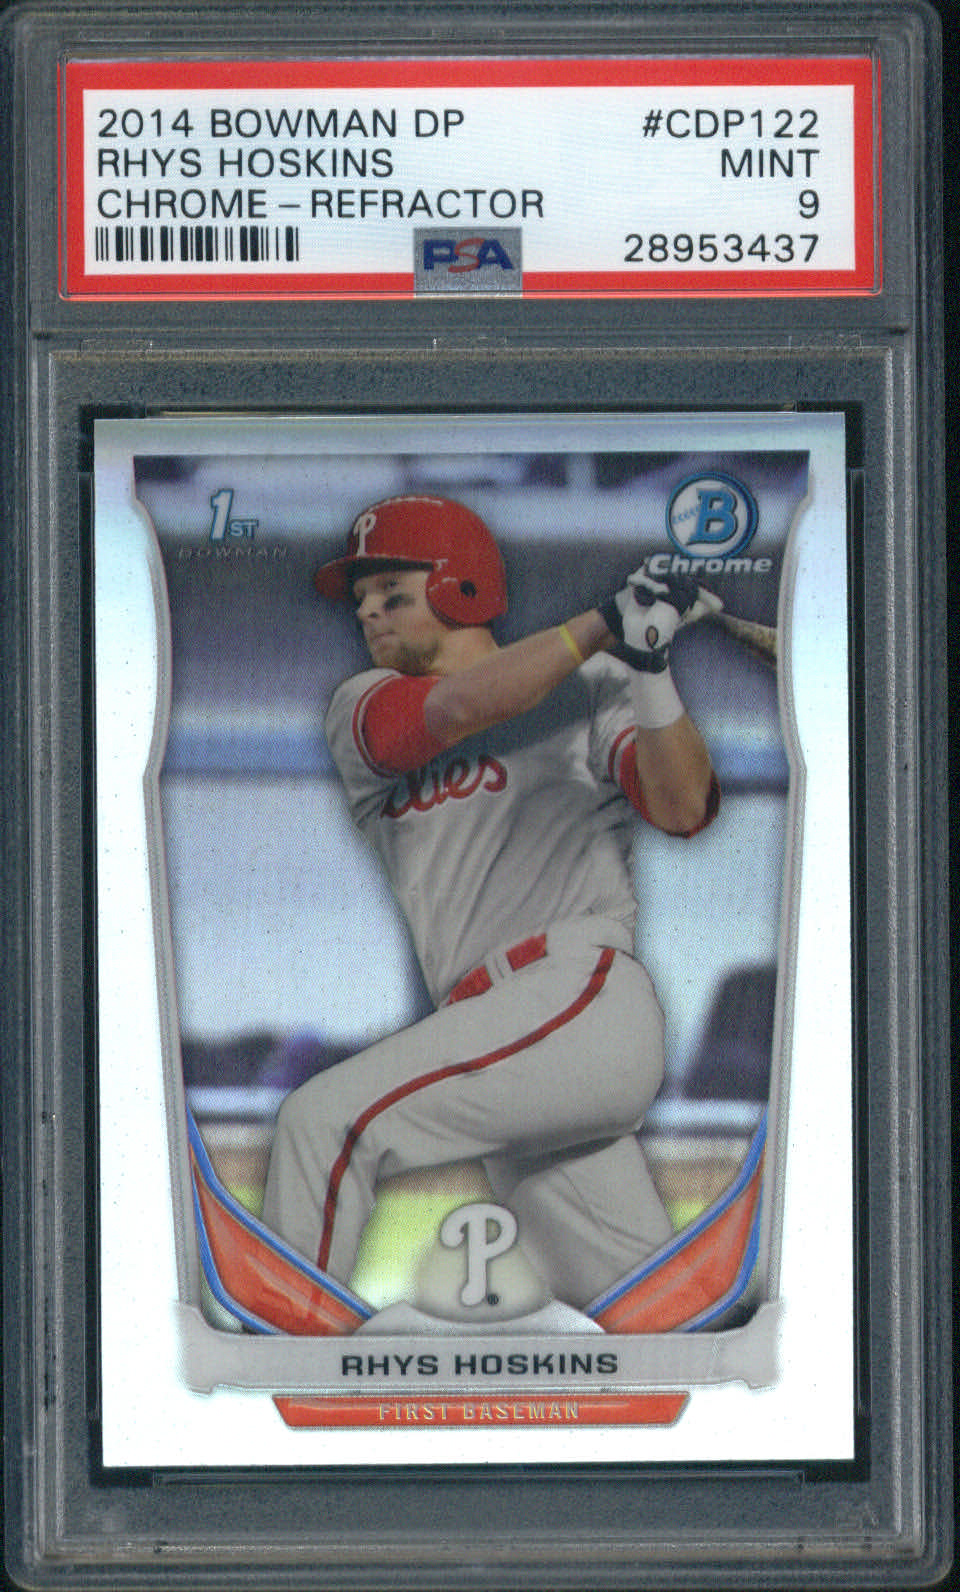 2014 Bowman Draft Picks Chrome Refractor #CDP122 Rhys Hoskins PSA 9